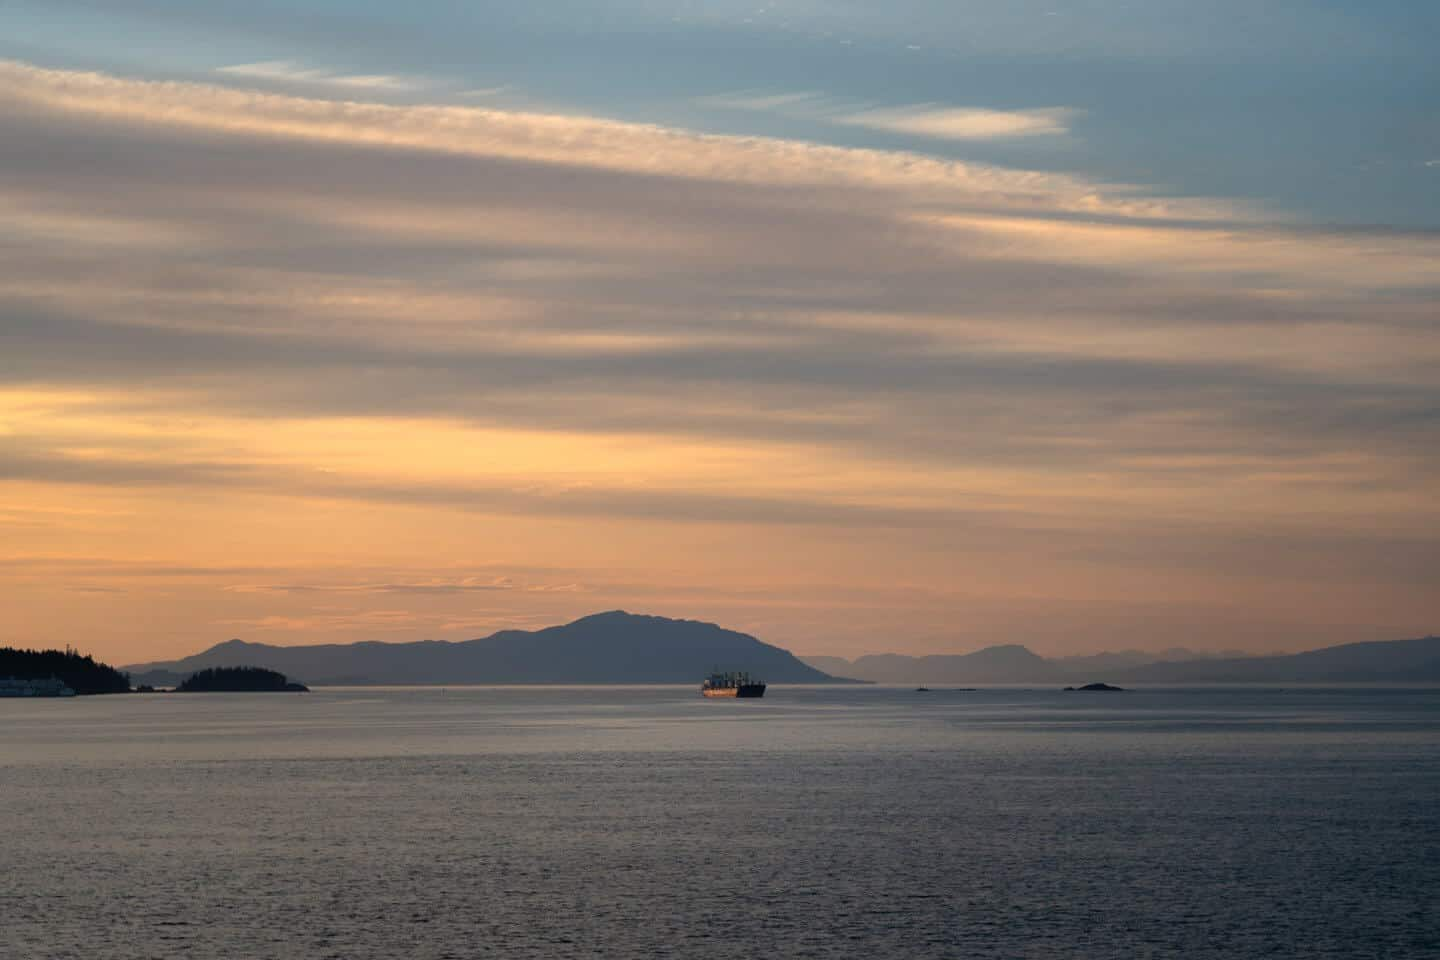 The Duke Point ferry to Vancouver Island provides one amazing sunset show